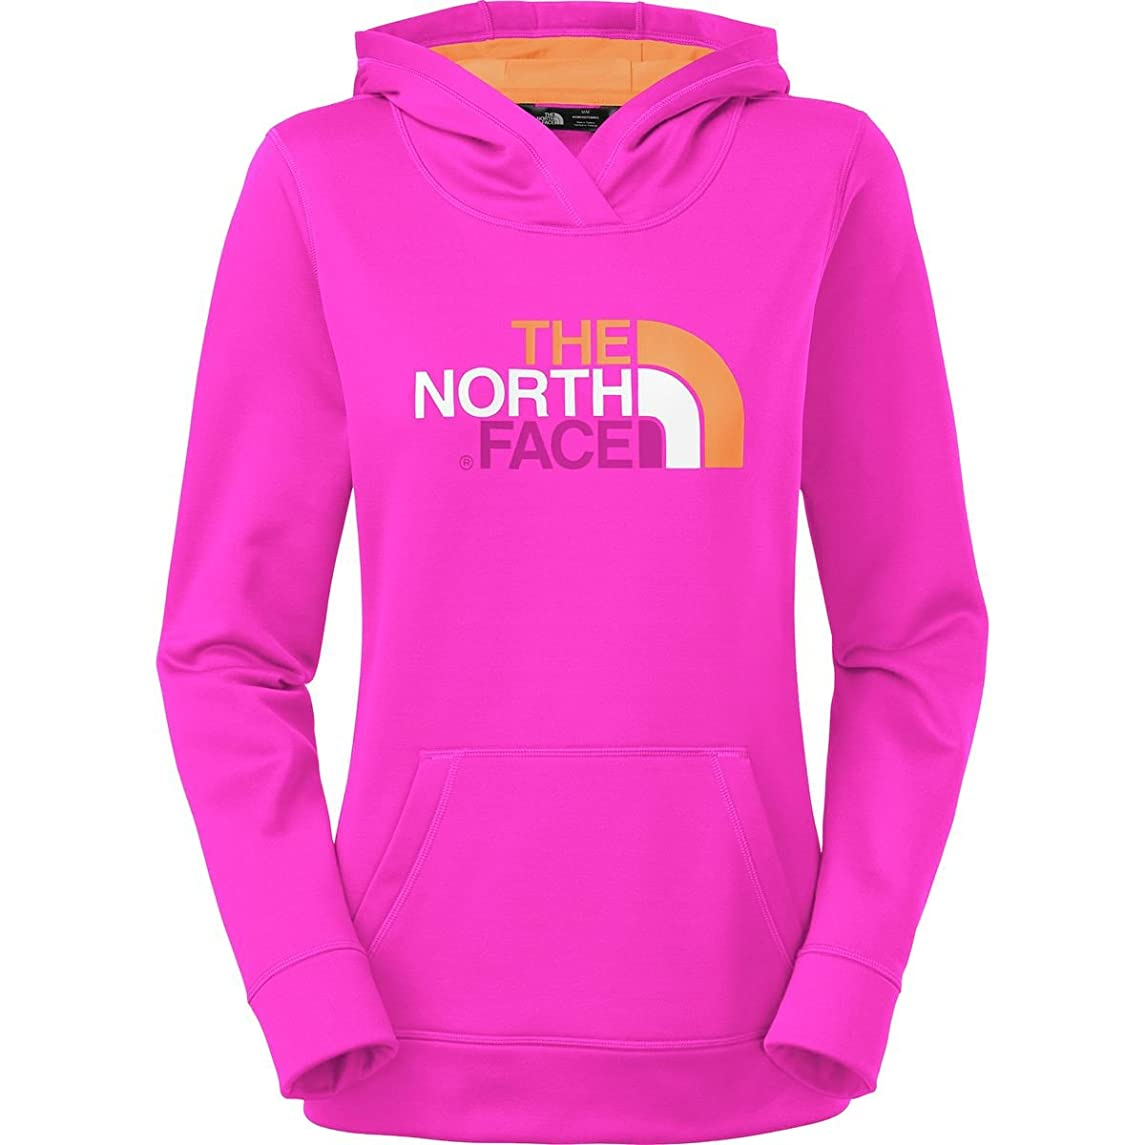 The North Face Fave Pullover Hoodie Womens Luminous Pink/Impact Orange Multi L